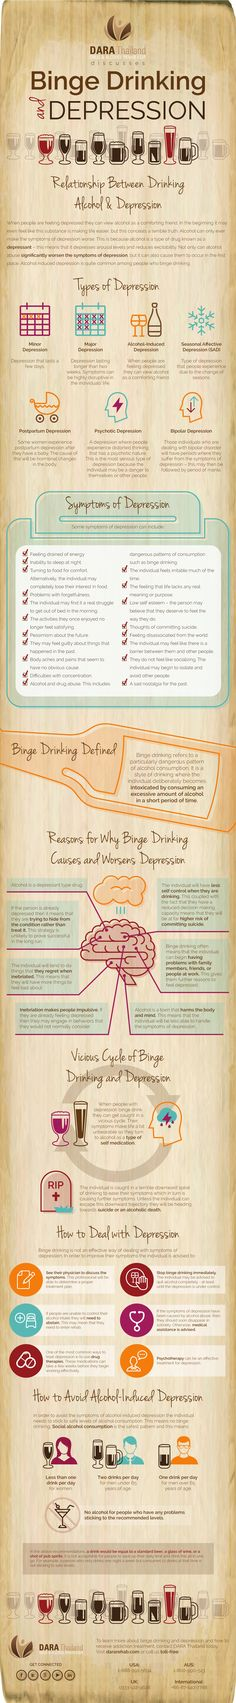 Binge Drinking and Depression [by DARA Thailand -- via Tipsographic] #bingedrinking #depression #rehab #health  #tipsographic